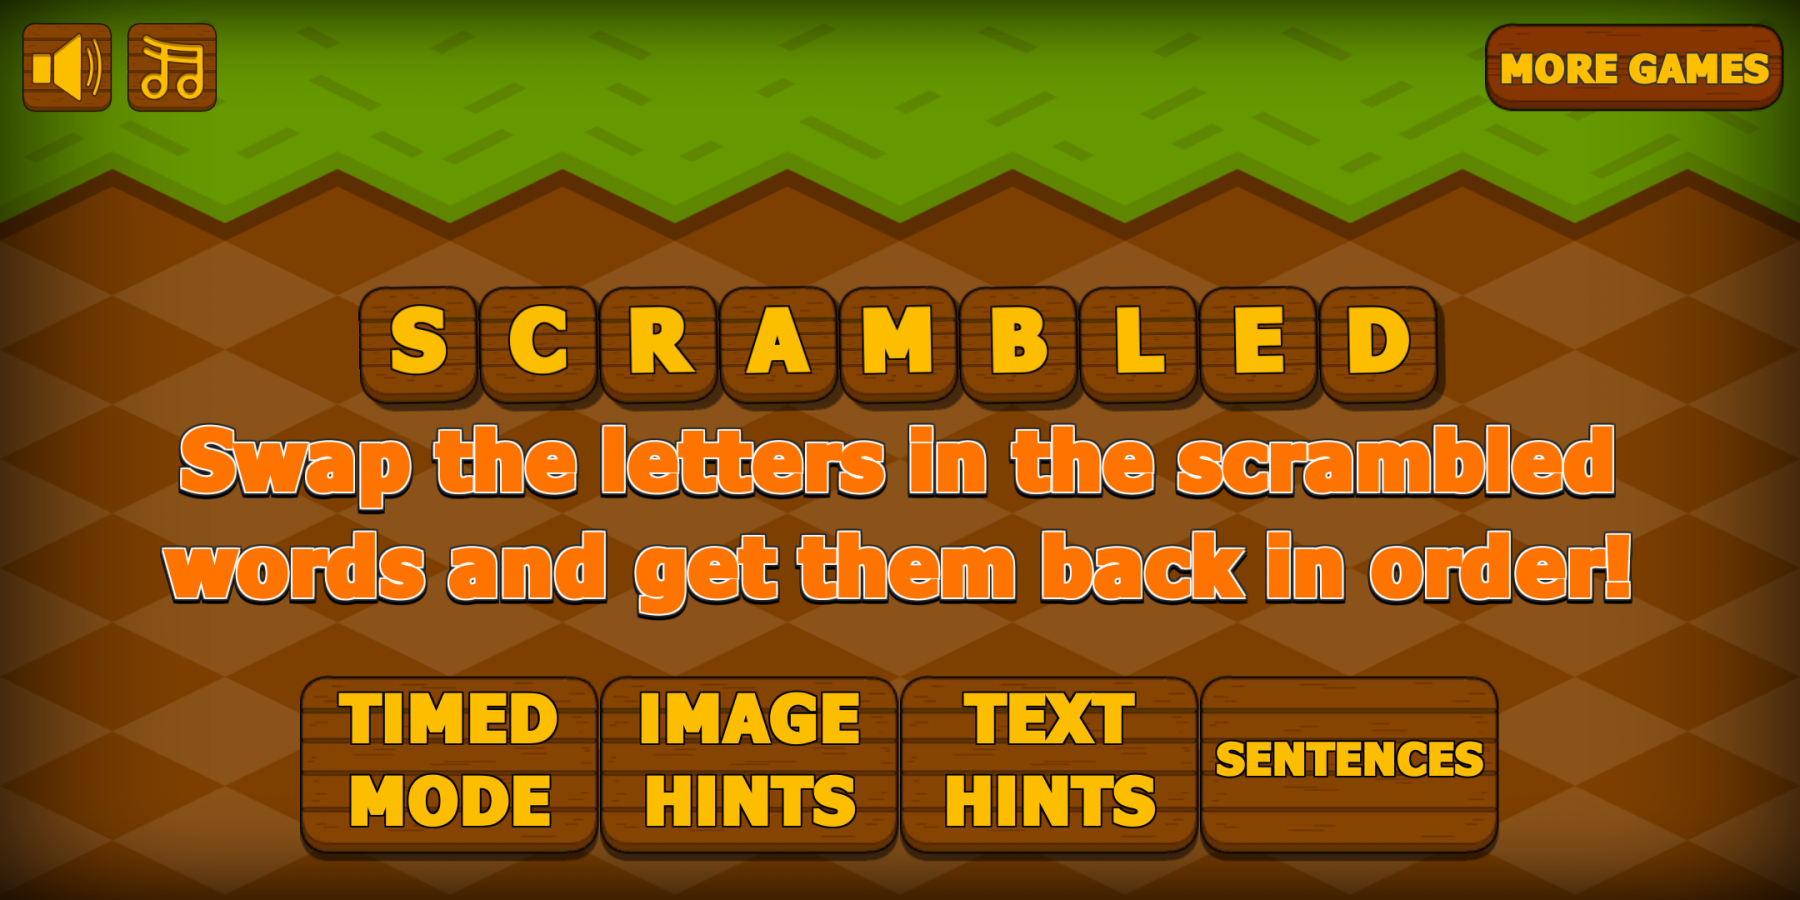 Screenshot_2019-07-16-19-10-06-530_com.word_.game_